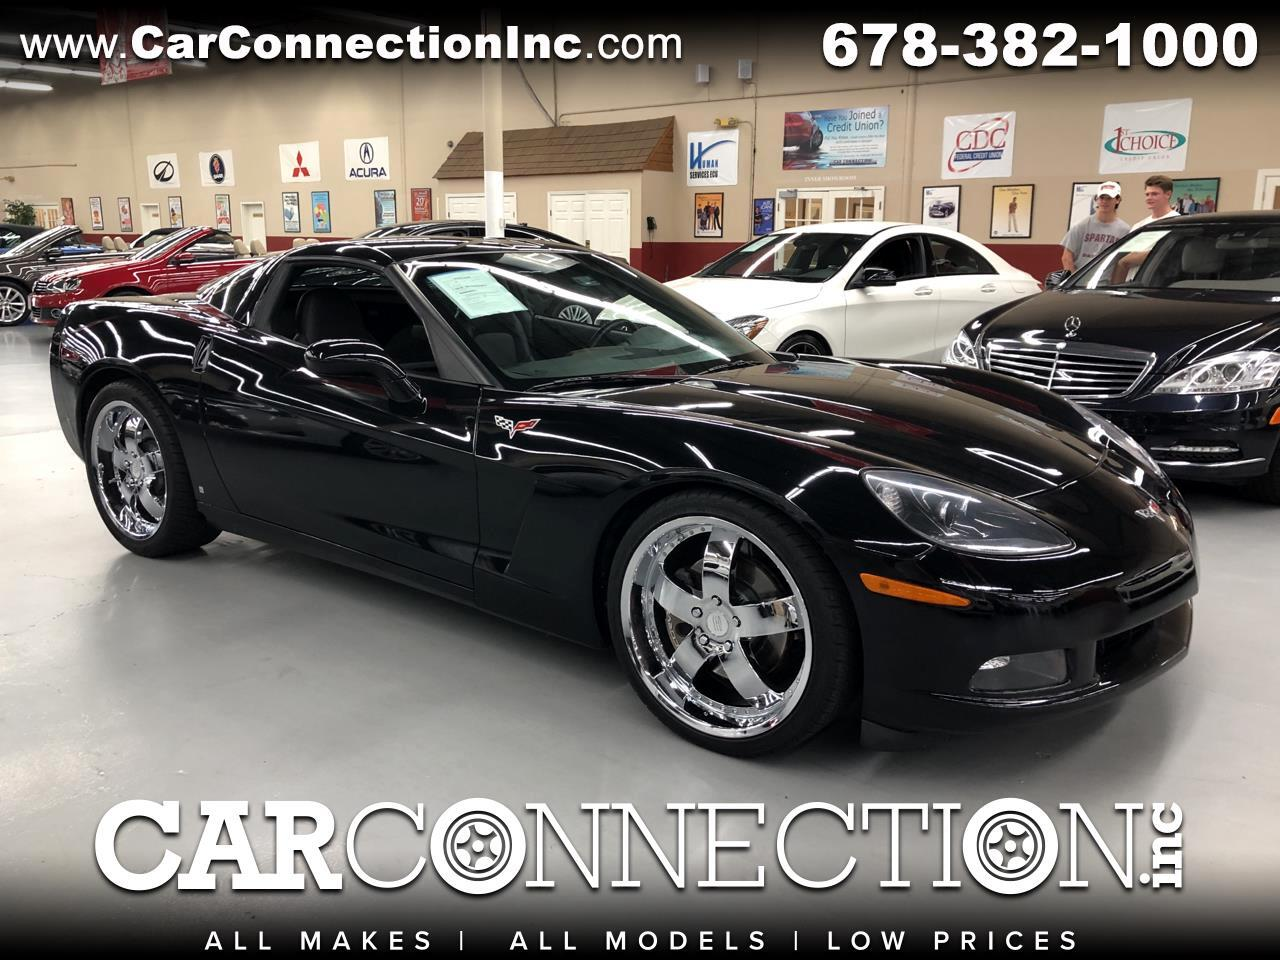 2007 Chevrolet Corvette 1LT Coupe Automatic